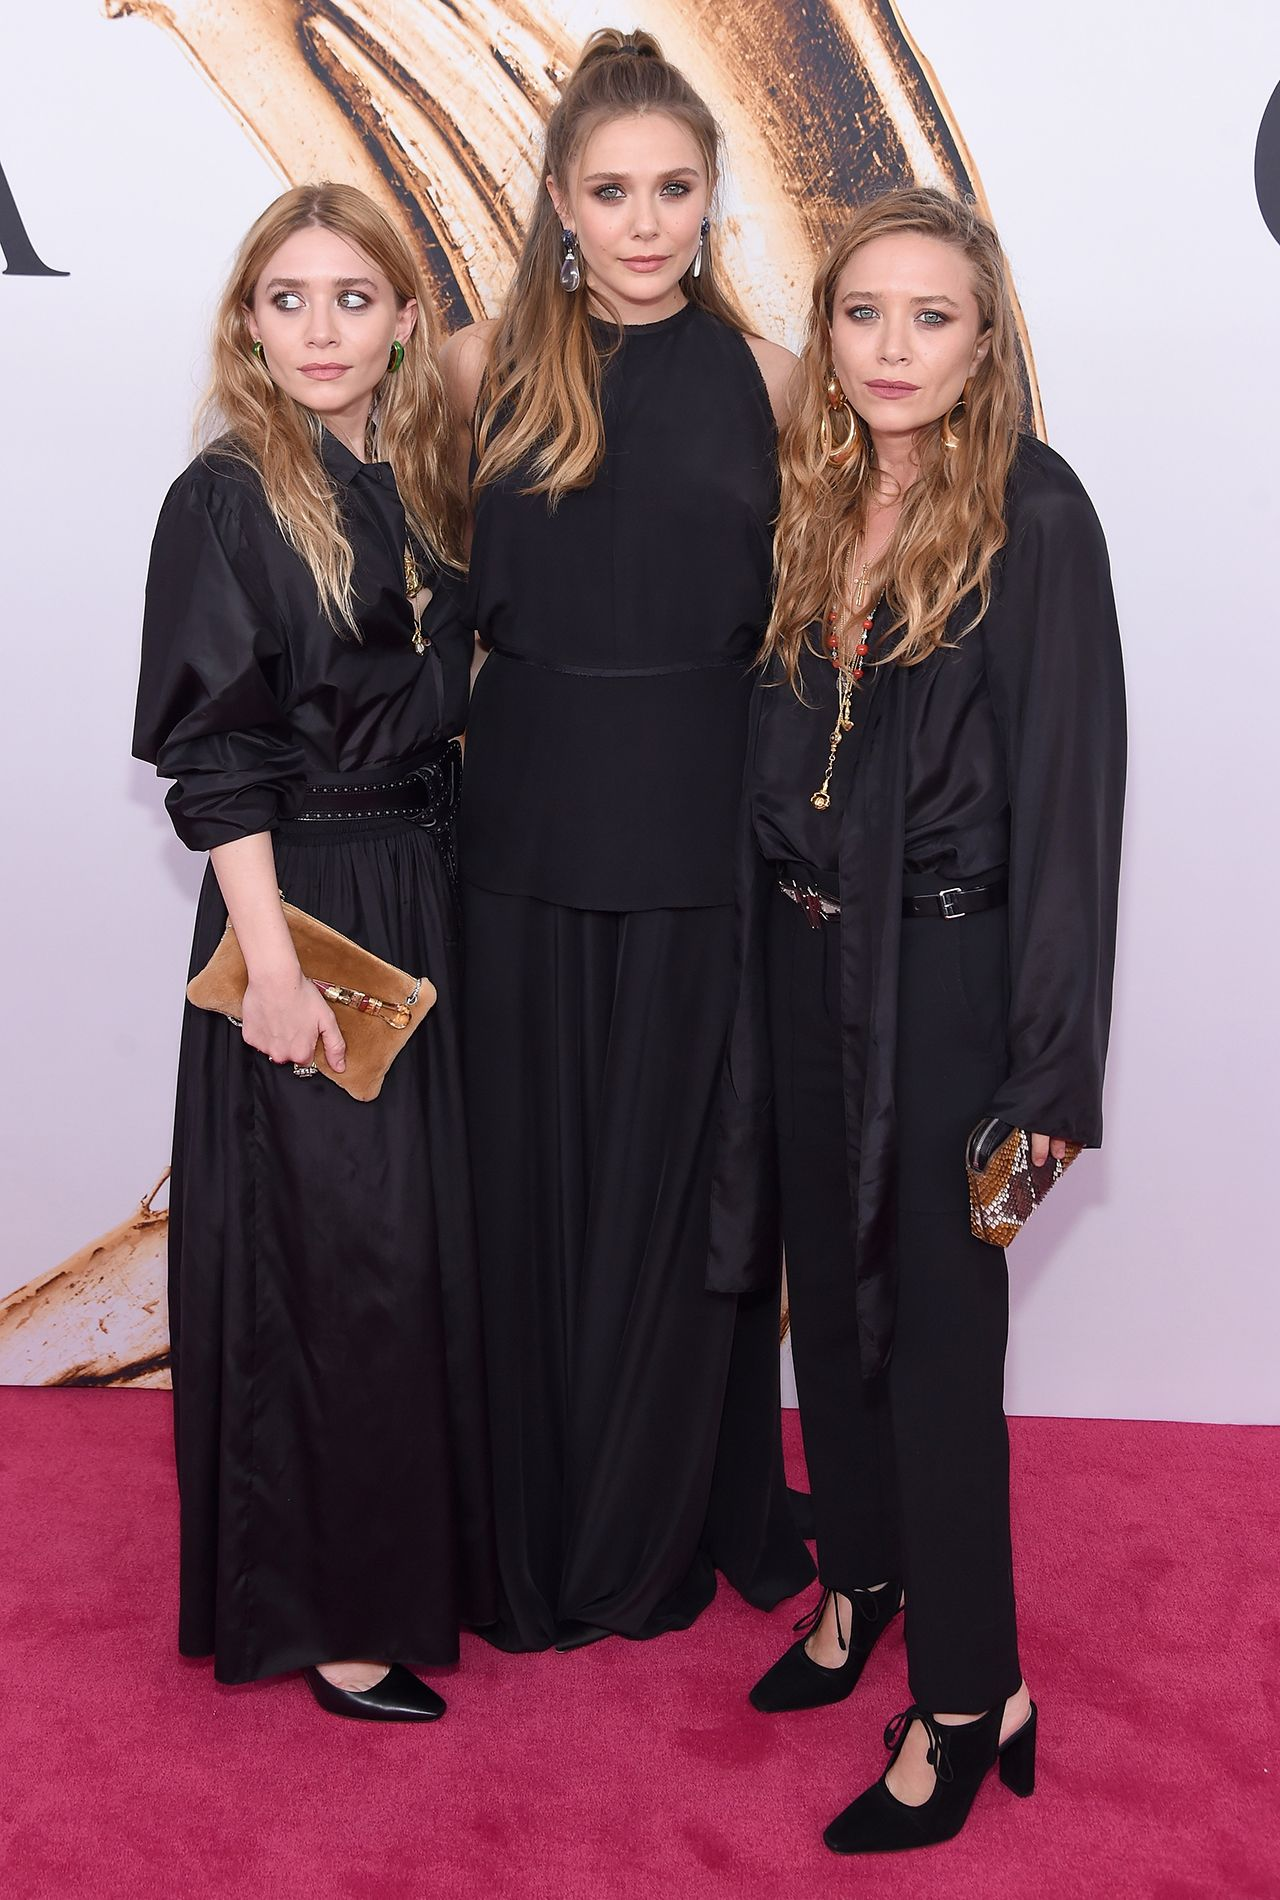 Mary Kate And Ashley Olsen Attend Rare Outing With Sister Elizabeth Check Out The Pics Olsen Twins Style Ashley Olsen Style Mary Kate Olsen